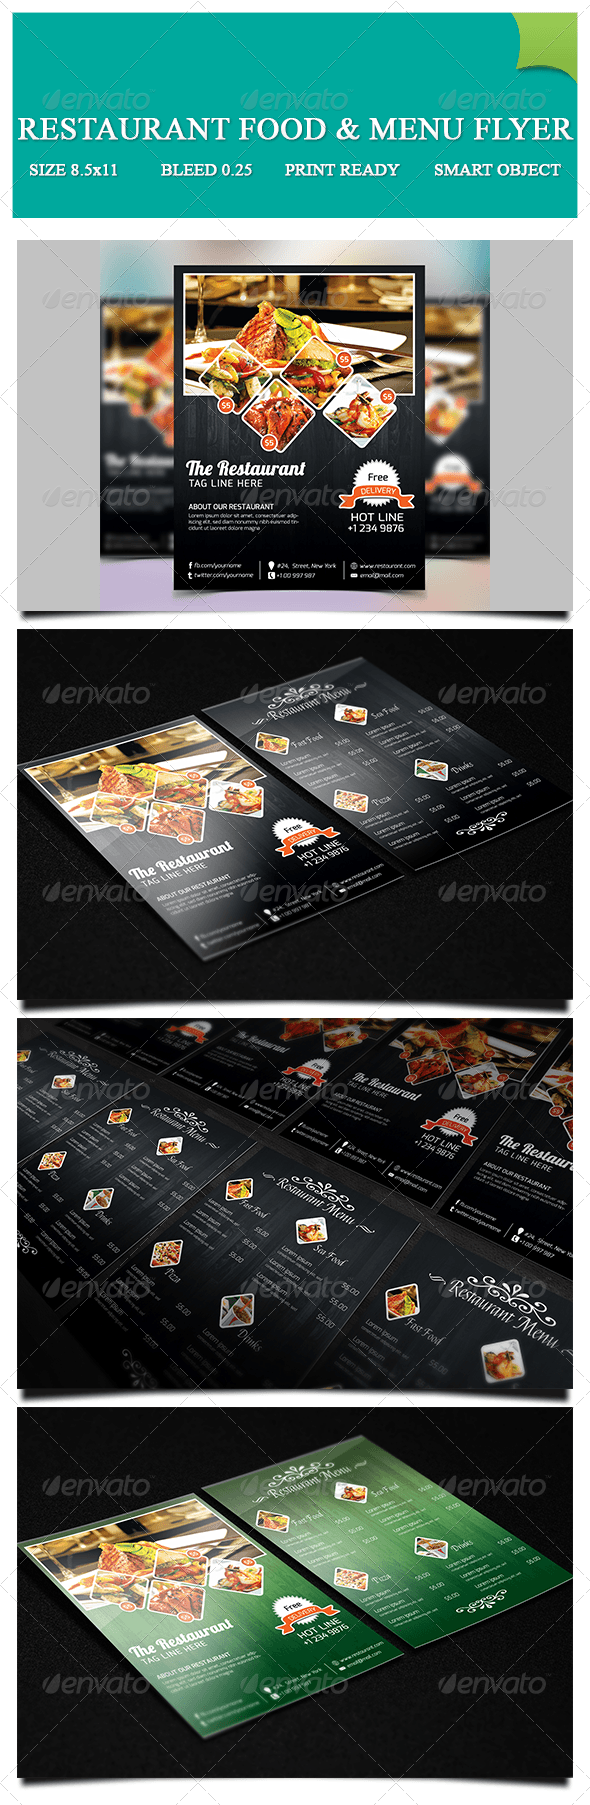 Restaurant Food & Menu Flyer